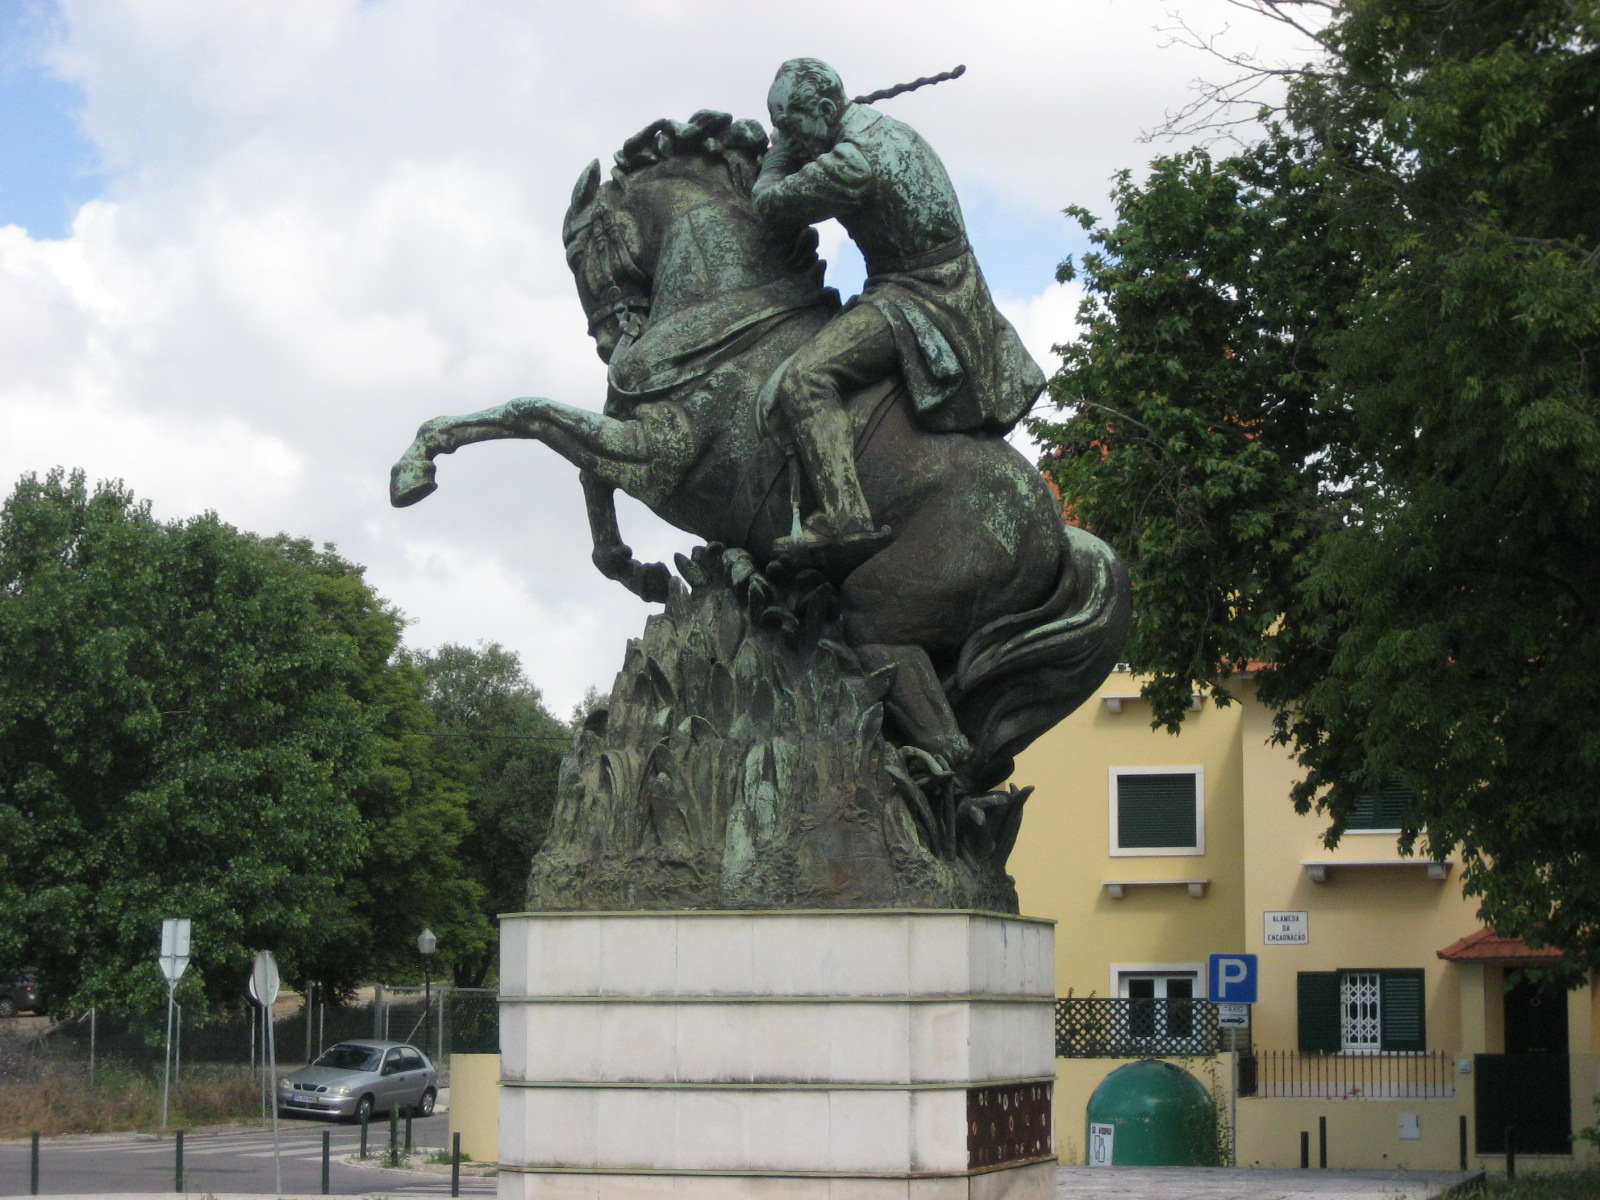 Statue of João Maria Ferreira do Amaral, 1935, Maximiano Alves, Portugal